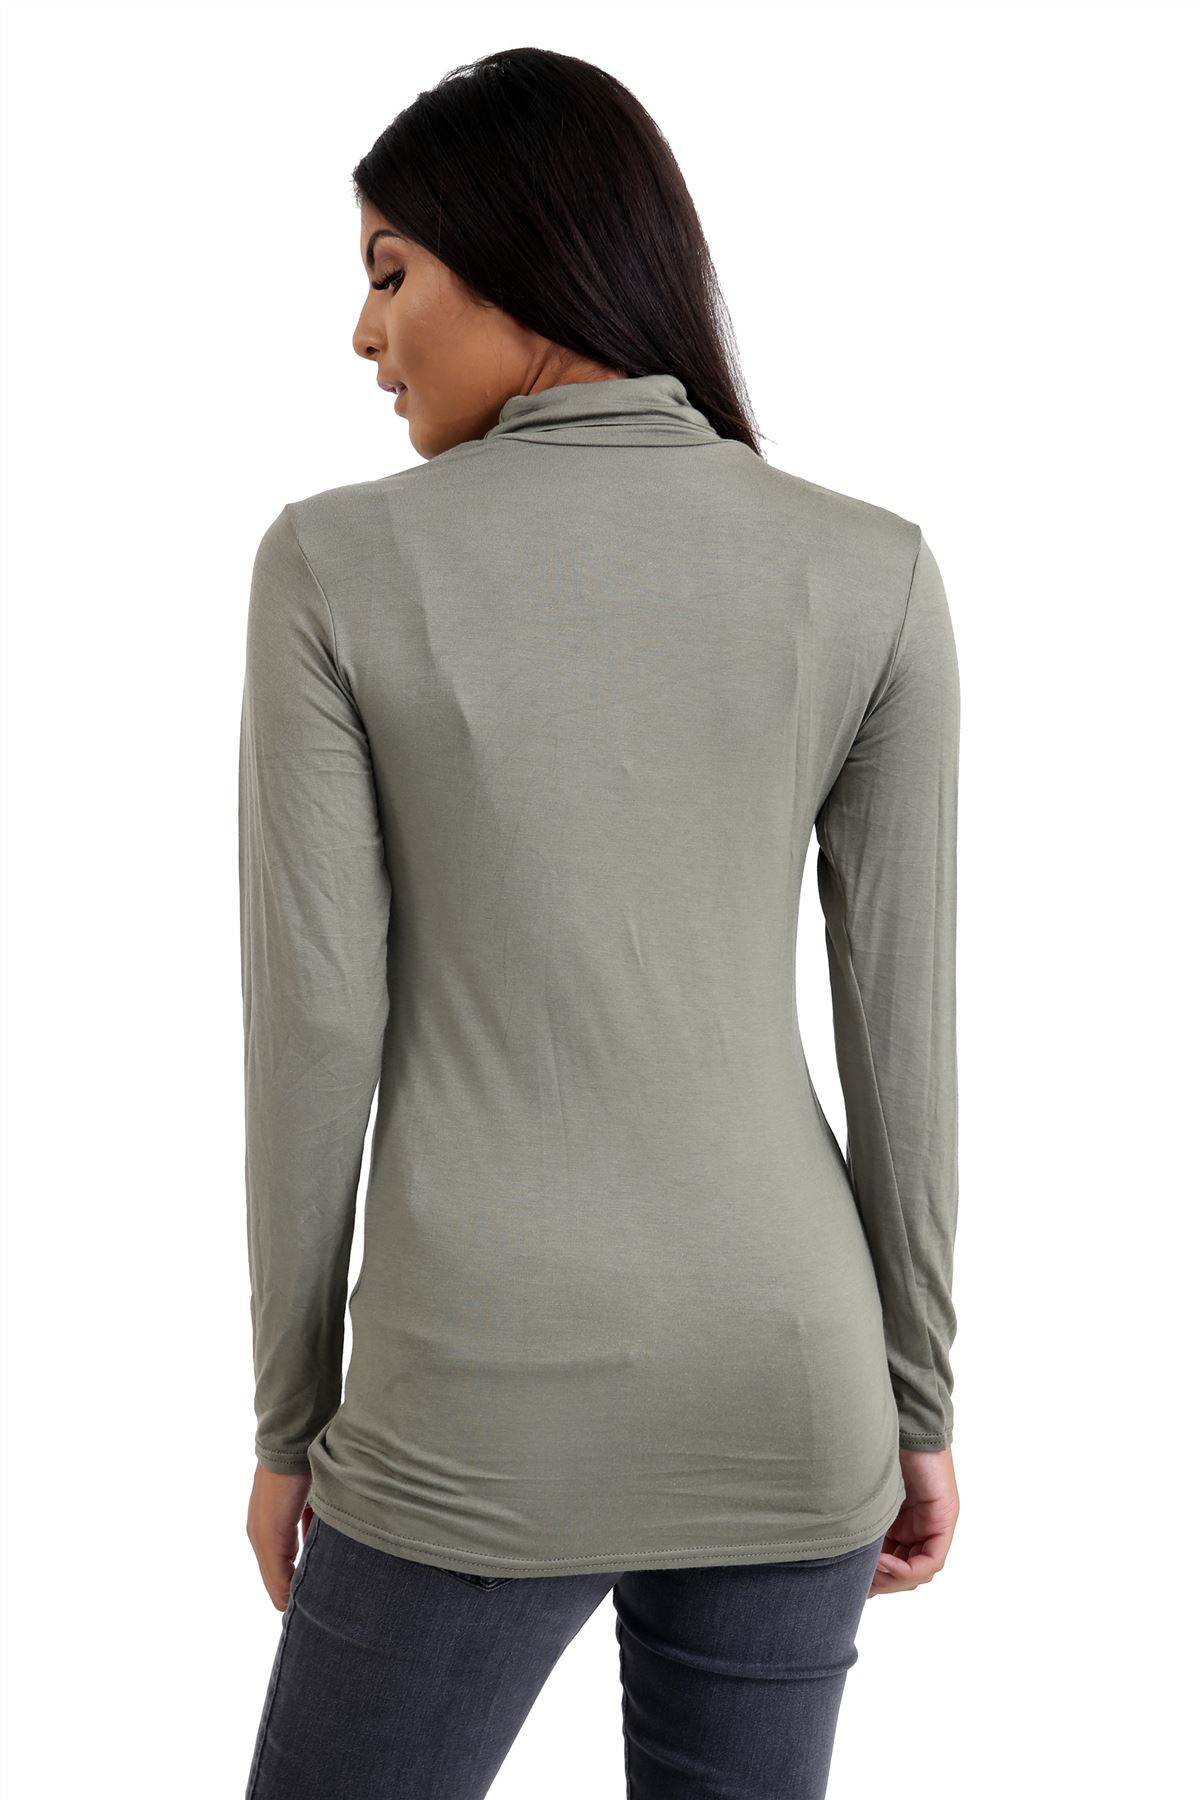 New-Ladies-Long-Sleeve-Plain-Turtle-Polo-Roll-Neck-Stretch-Jumper-T-Shirt-TeeTop thumbnail 53